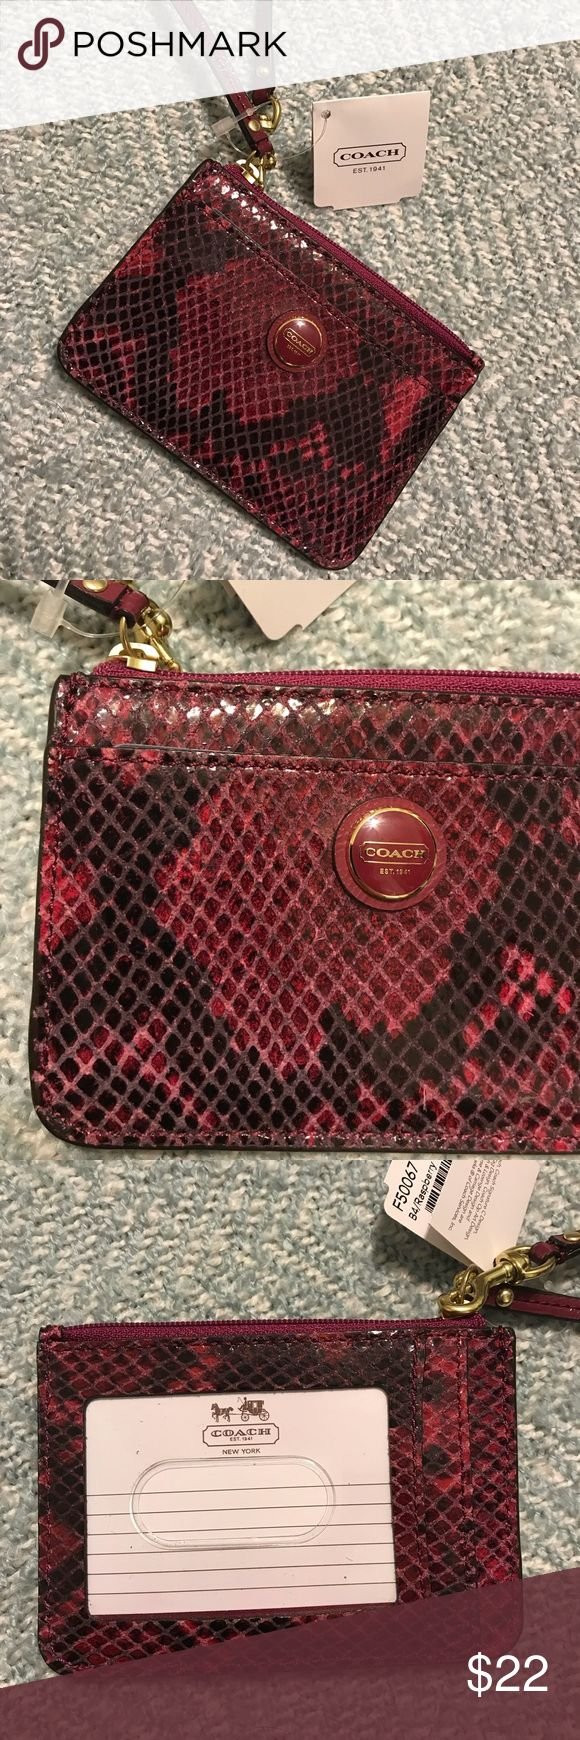 NWT COACH luggage tag NWT COACH luggage tag. Raspberry colored snakeskin. Beautiful! Coach Other